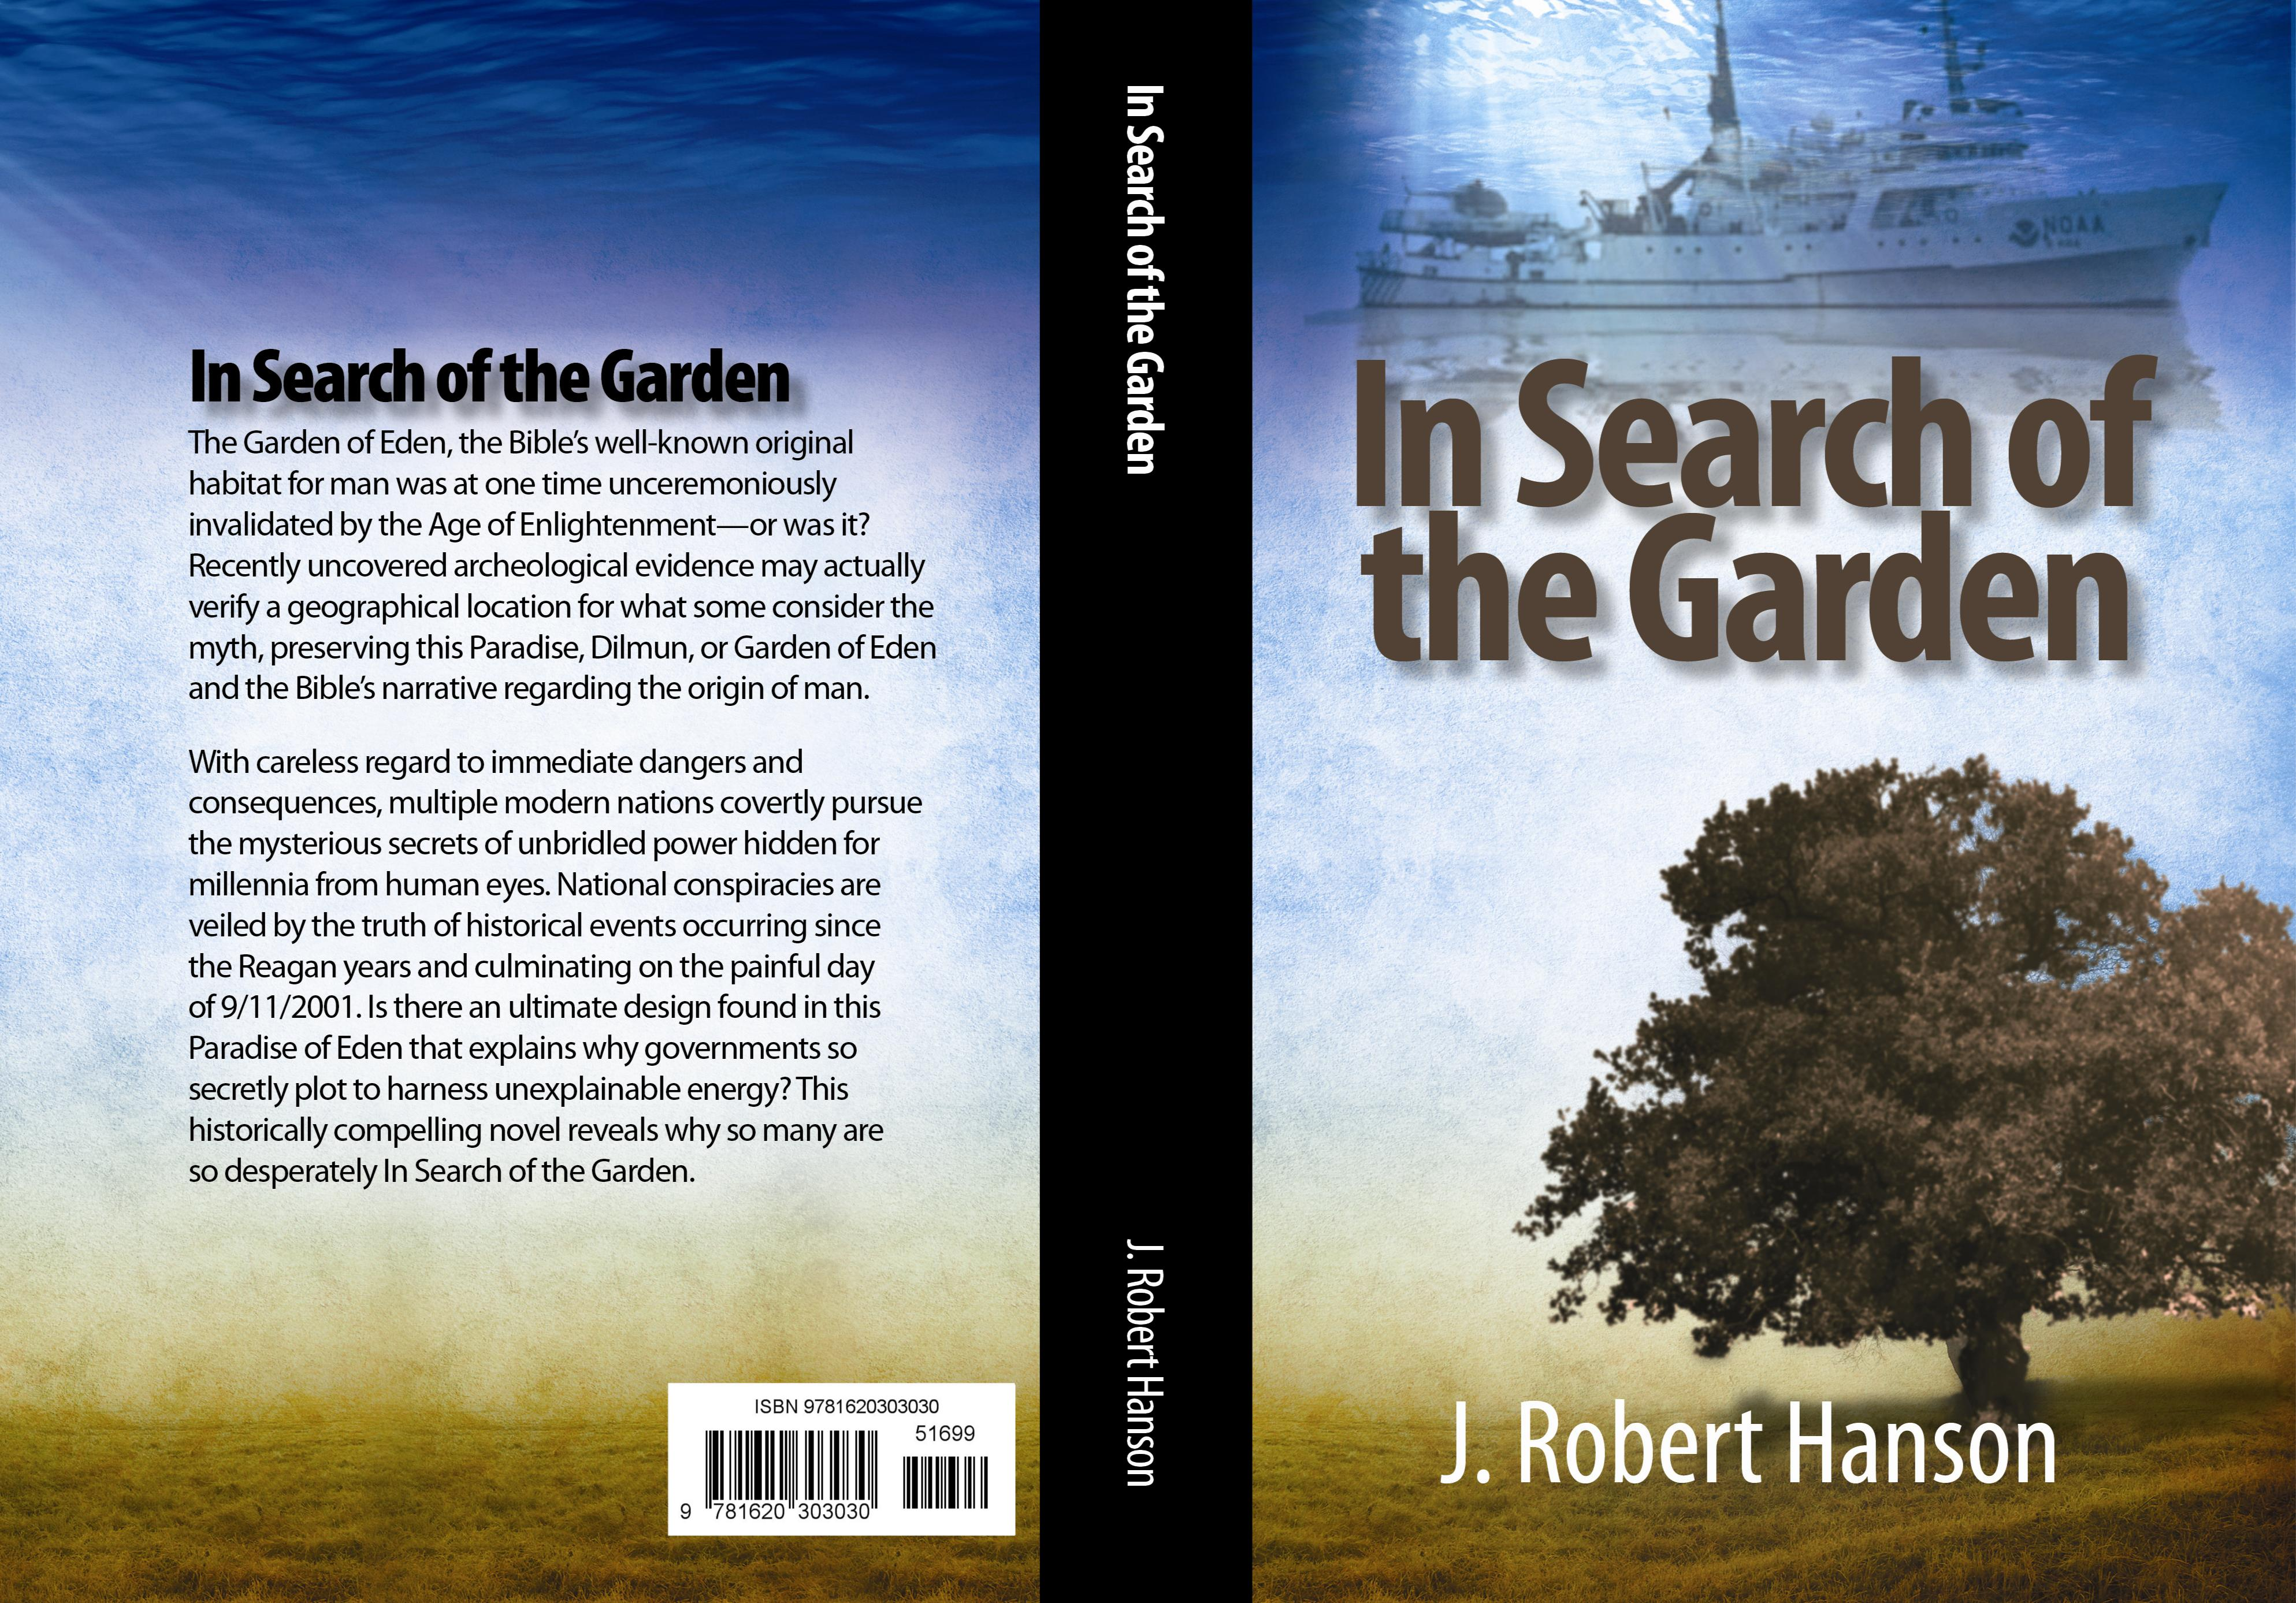 In Search of the Garden cover image